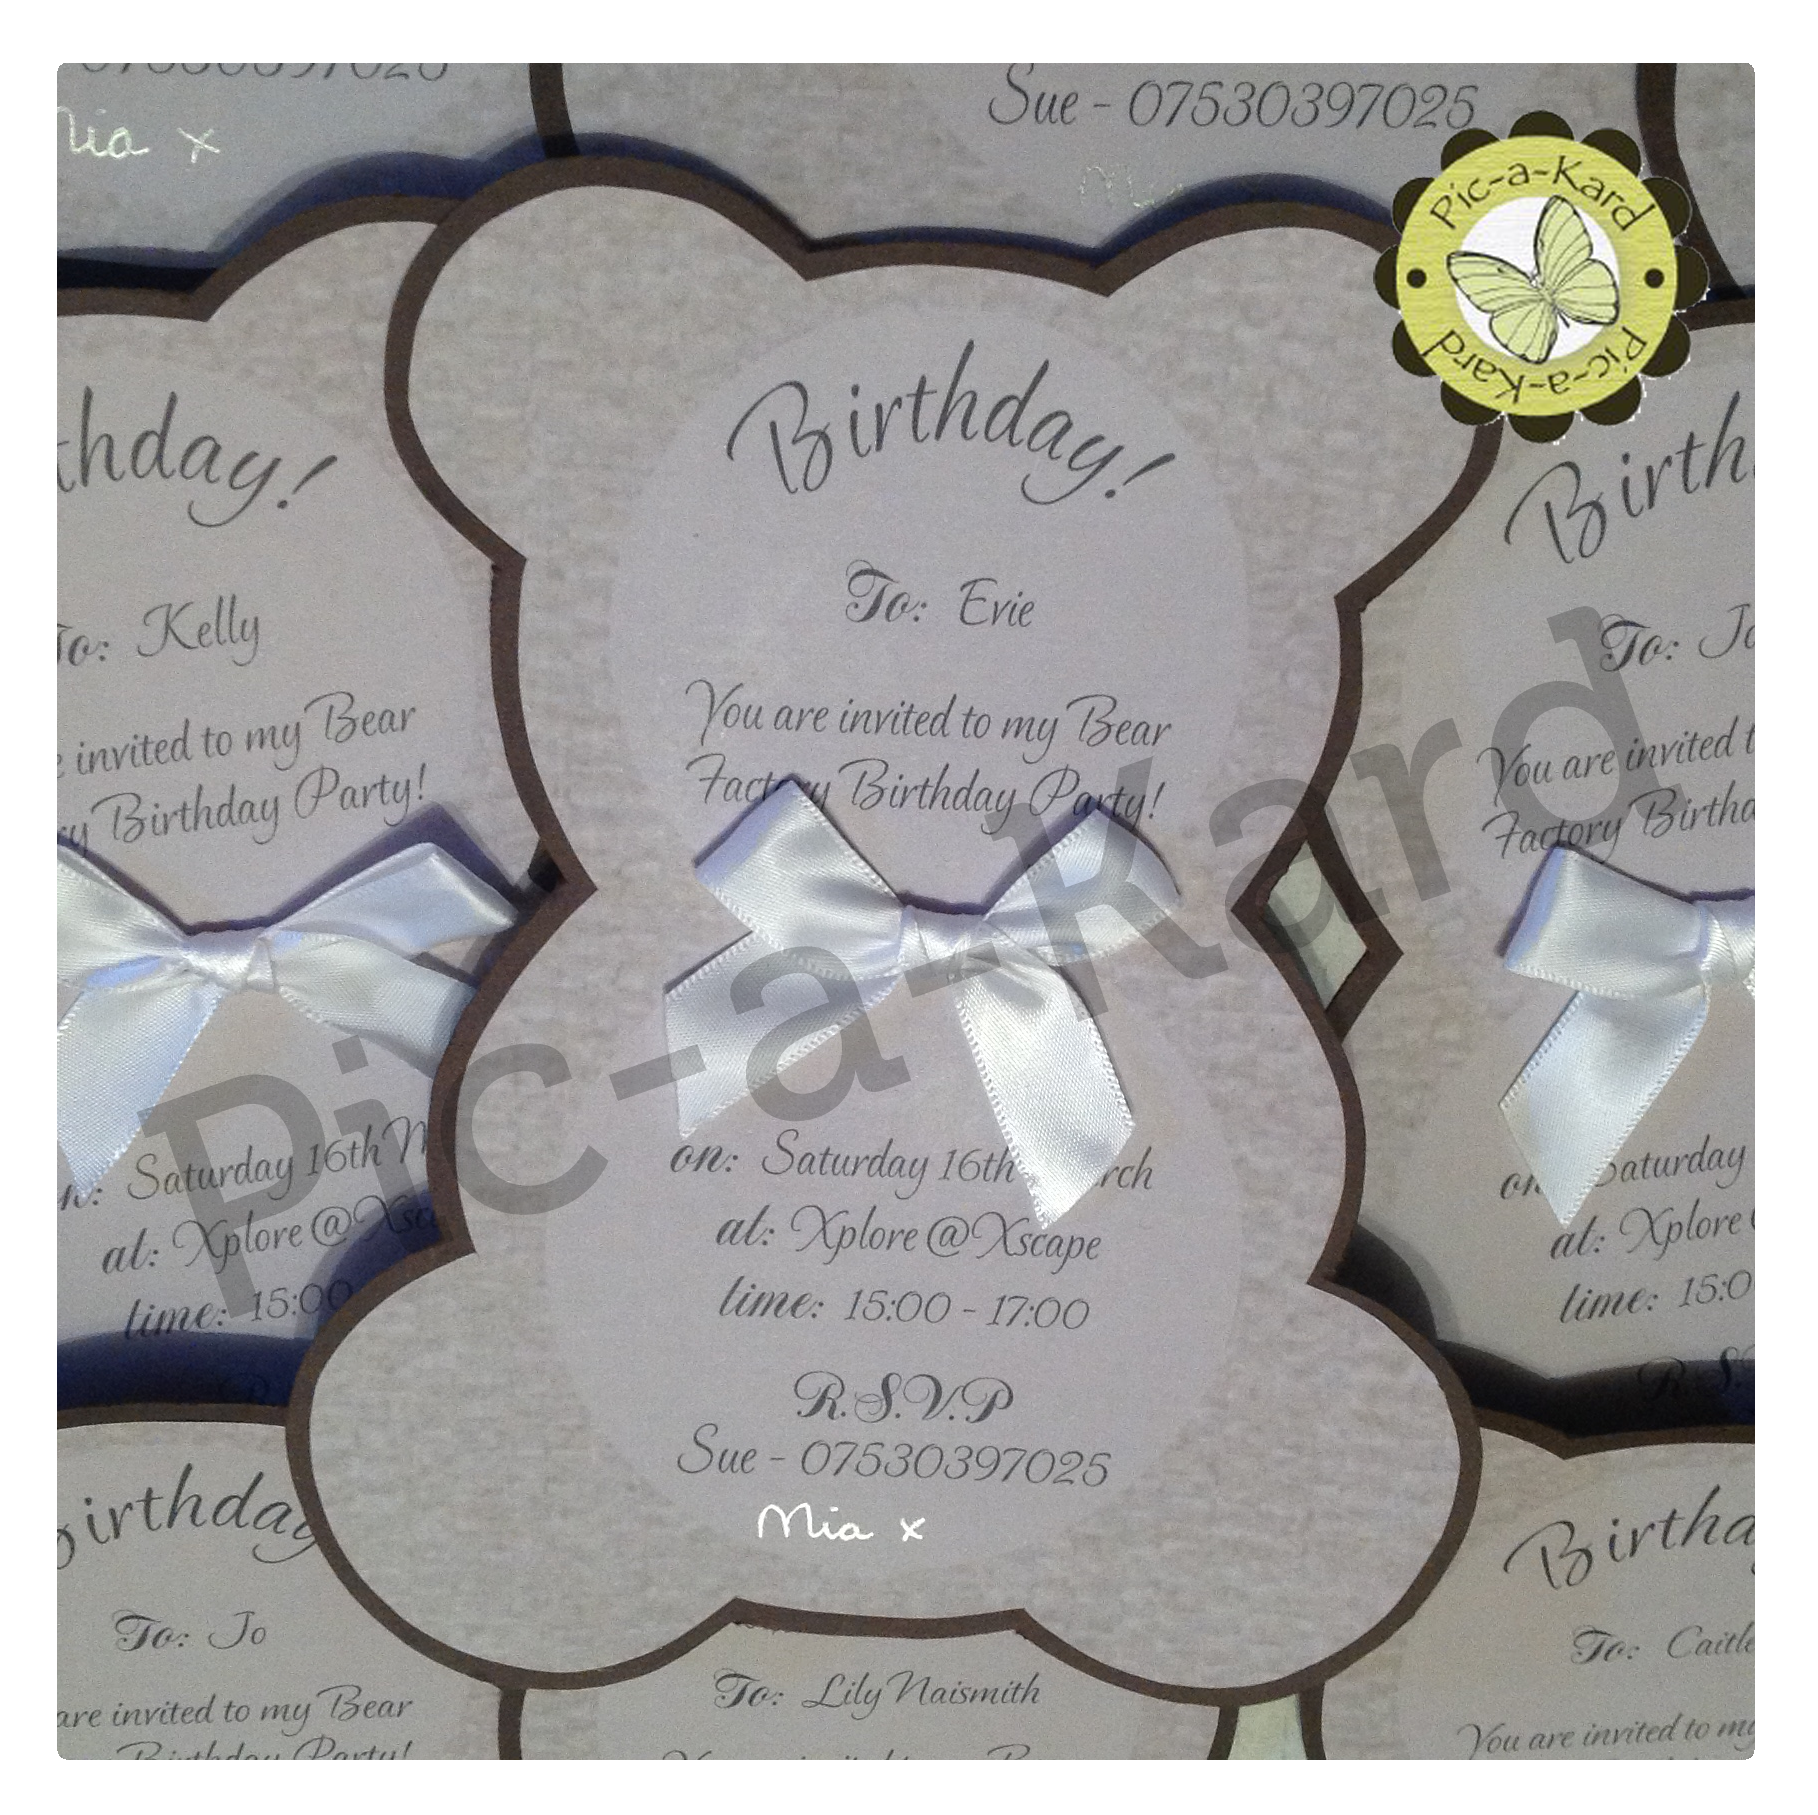 Teddy Bear Invitations Bday parties Pinterest Teddy bear